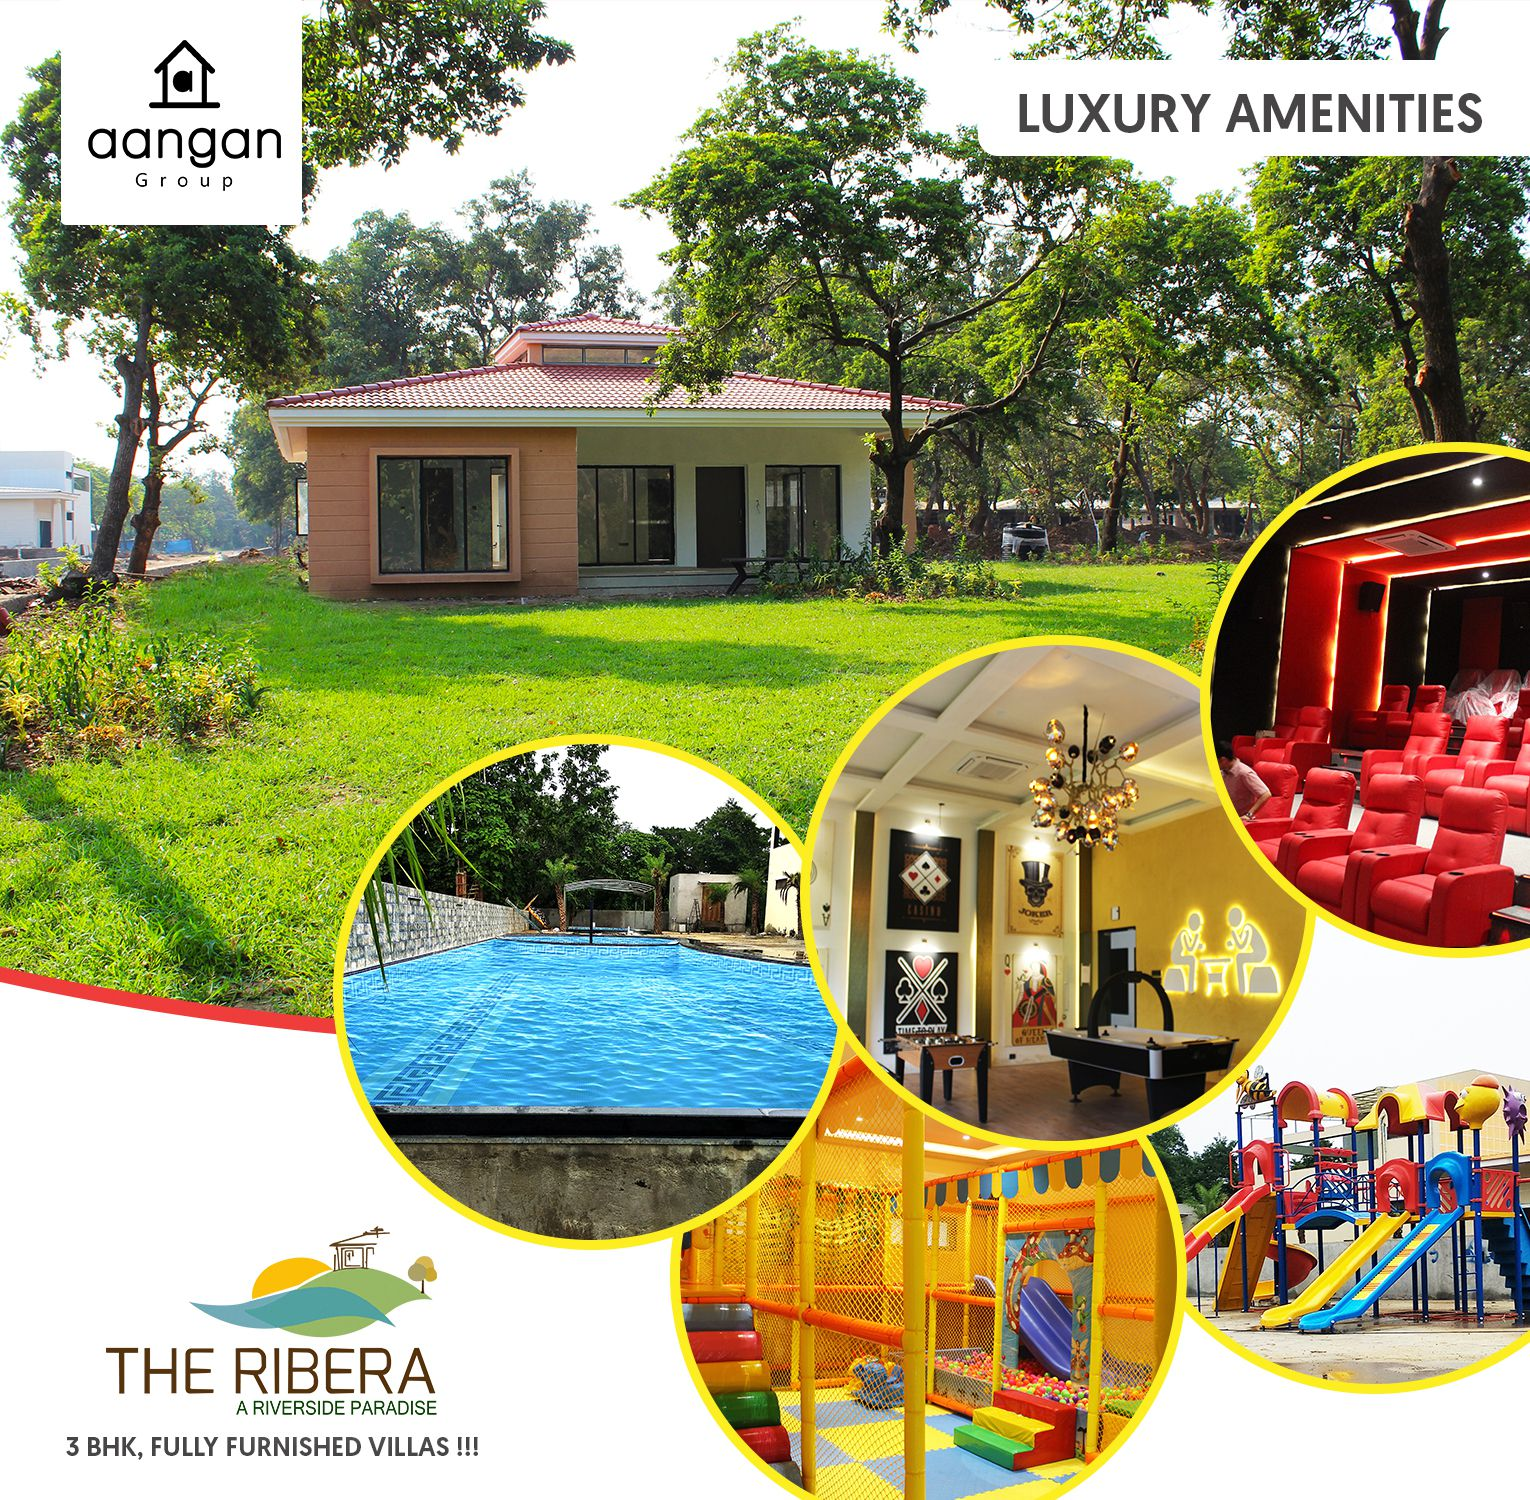 The Ribera Luxury Amenities